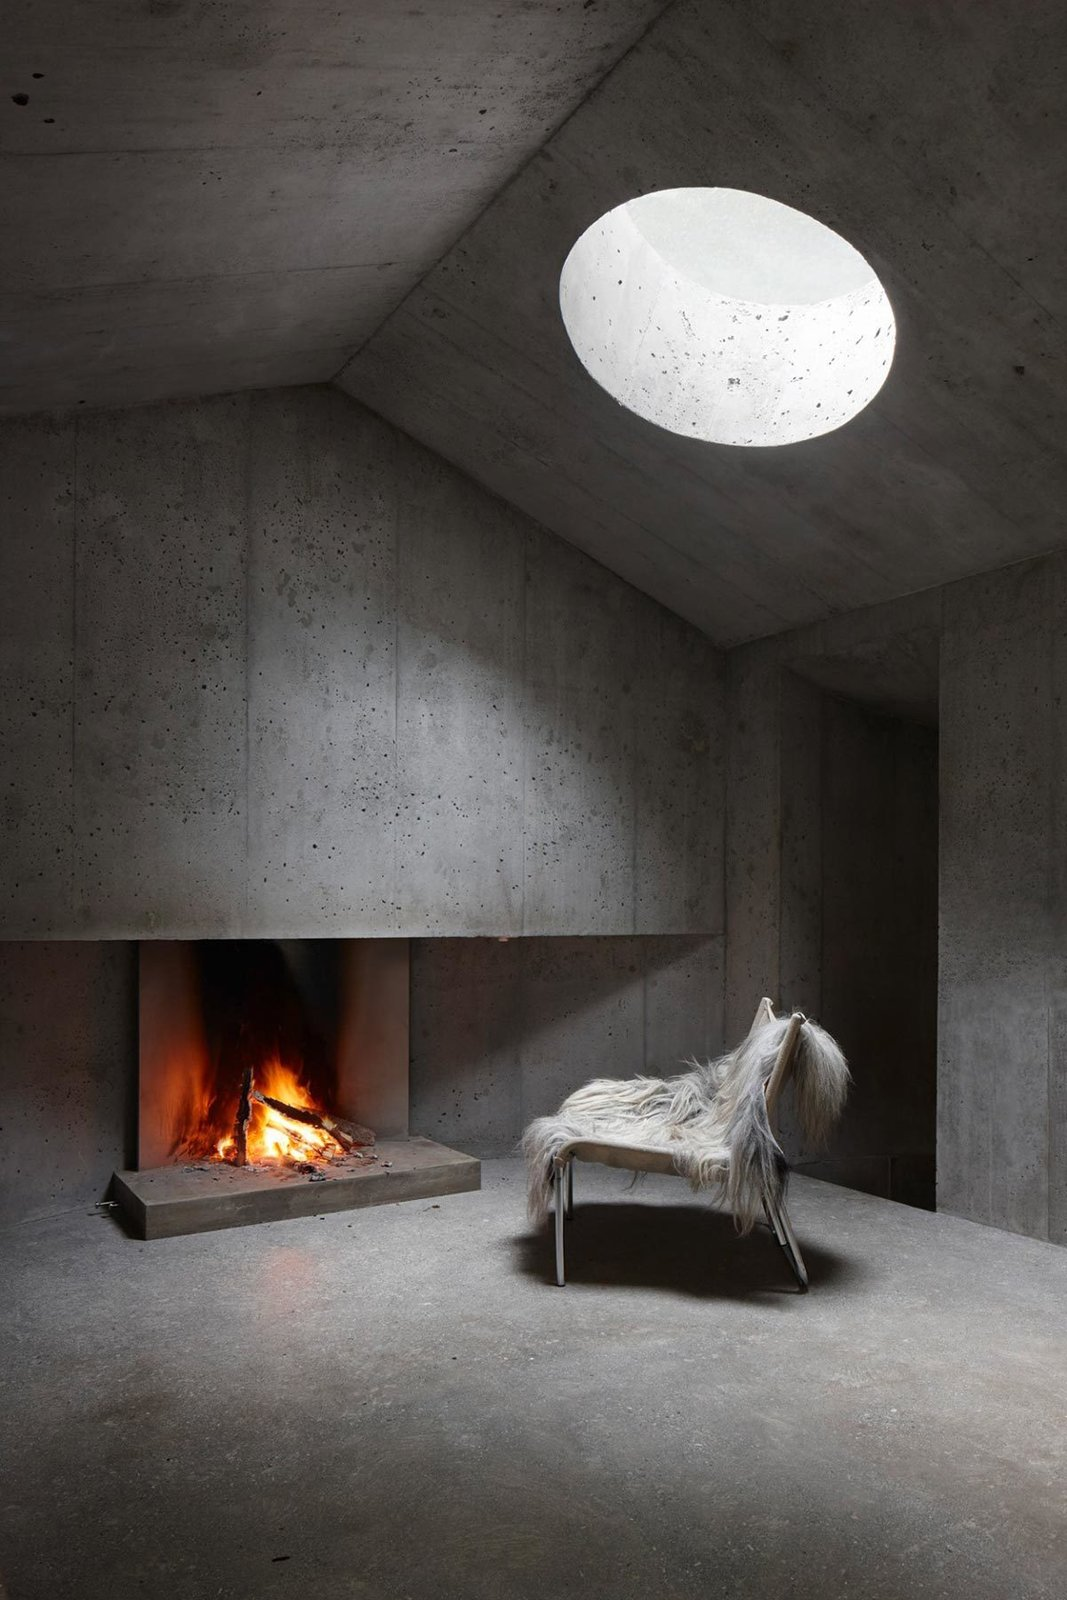 Concrete Shelter in the Image of a Cabin  Brutal Beauty